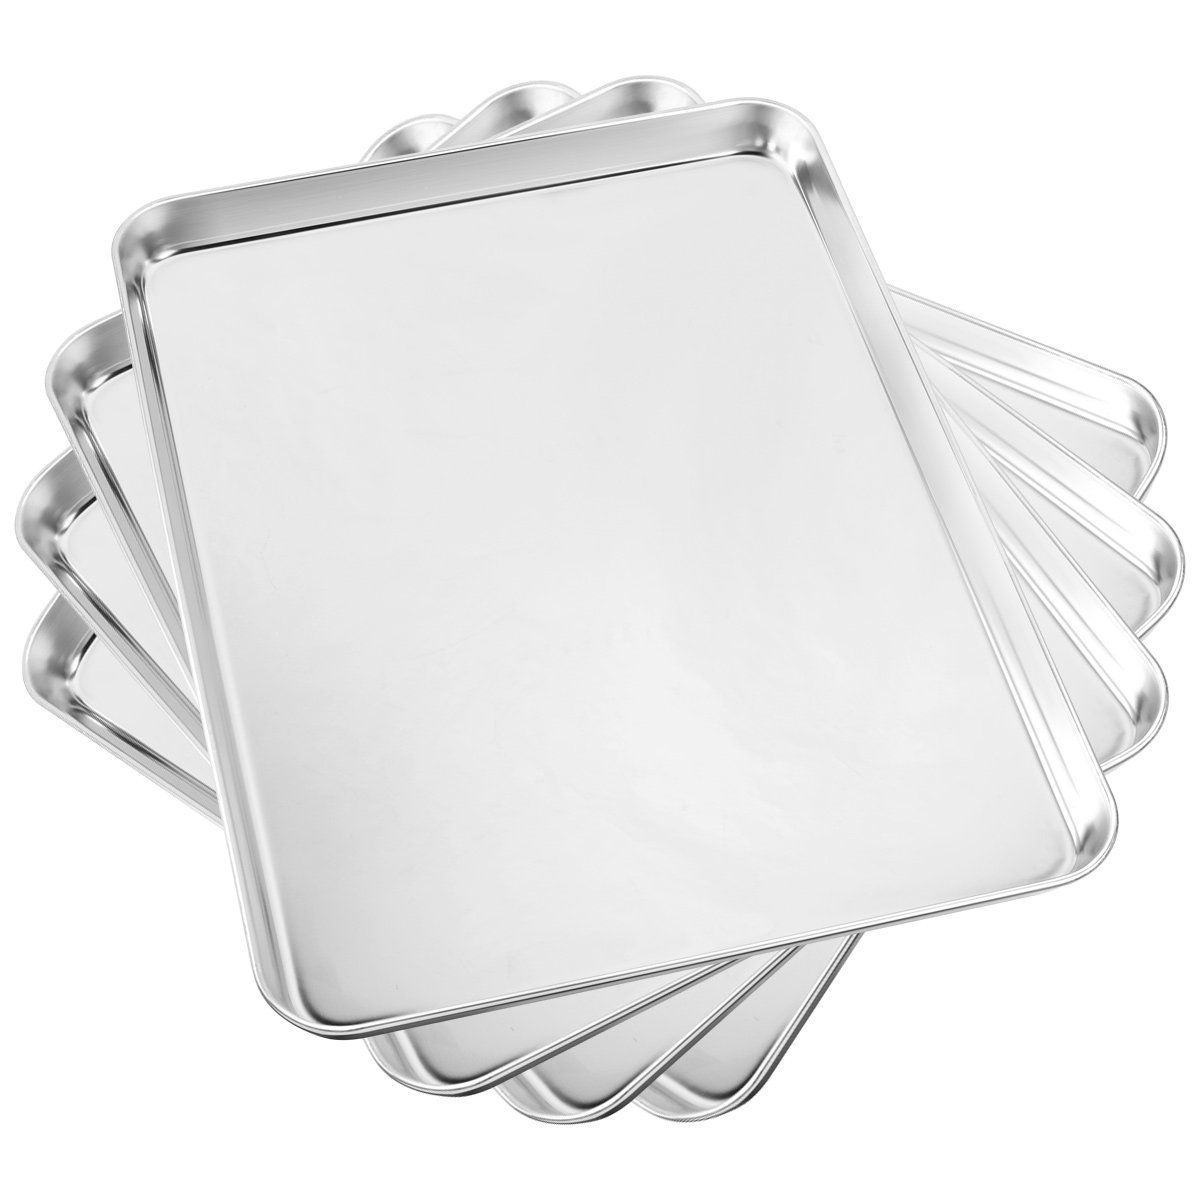 Baking Sheet Set Of 4 Yododo Cookie Sheets Metal Stainless Steel Tray Baking Pans Rectangle Size 16 X 12 X 1 Inch Mi Easy Cleaning Rust Free Stainless Steel